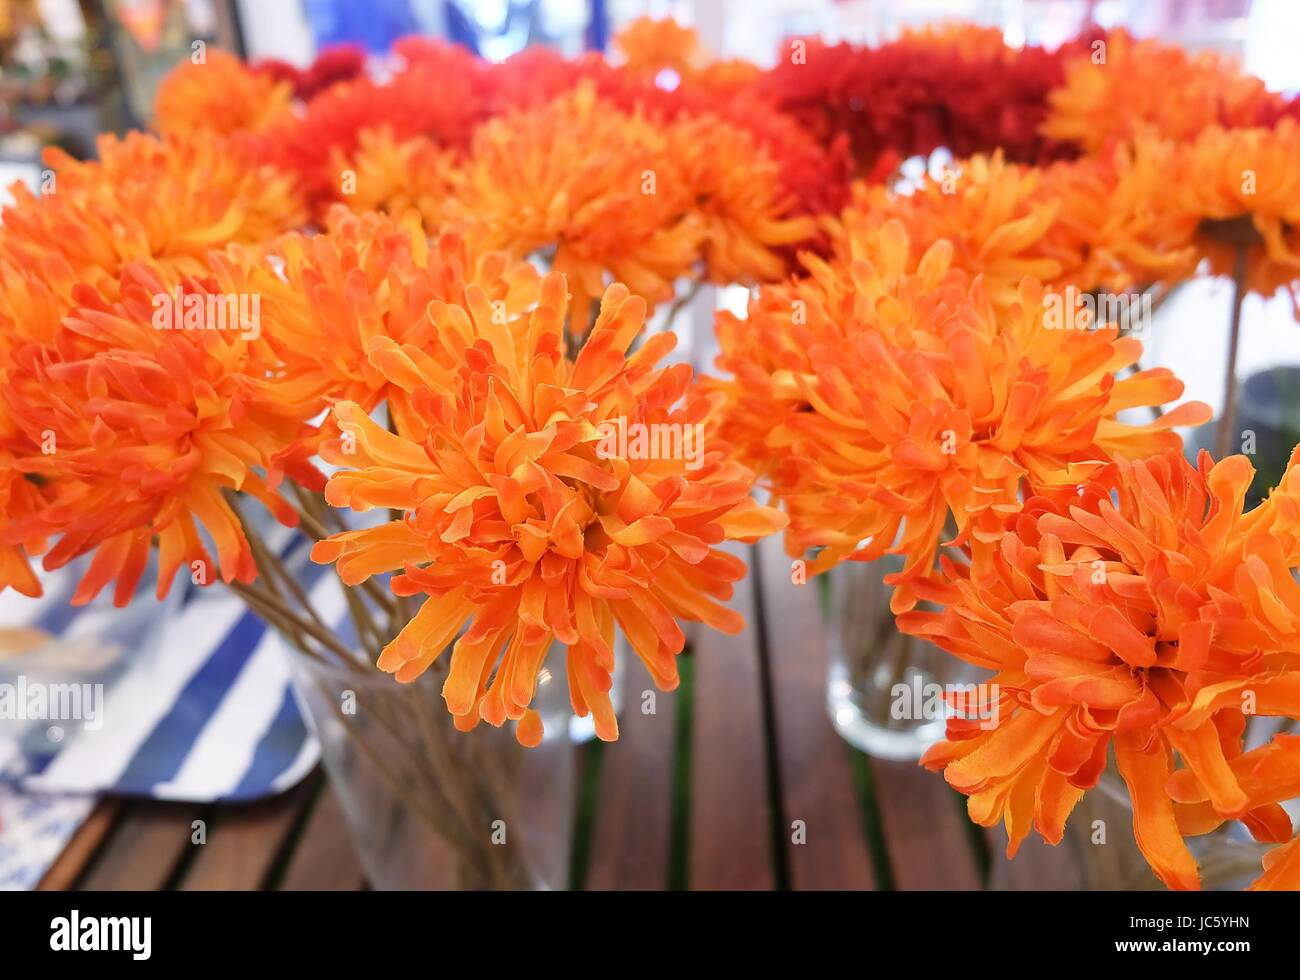 Bright And Beautiful Orange Artificial Daisy Gerbera Flowers In